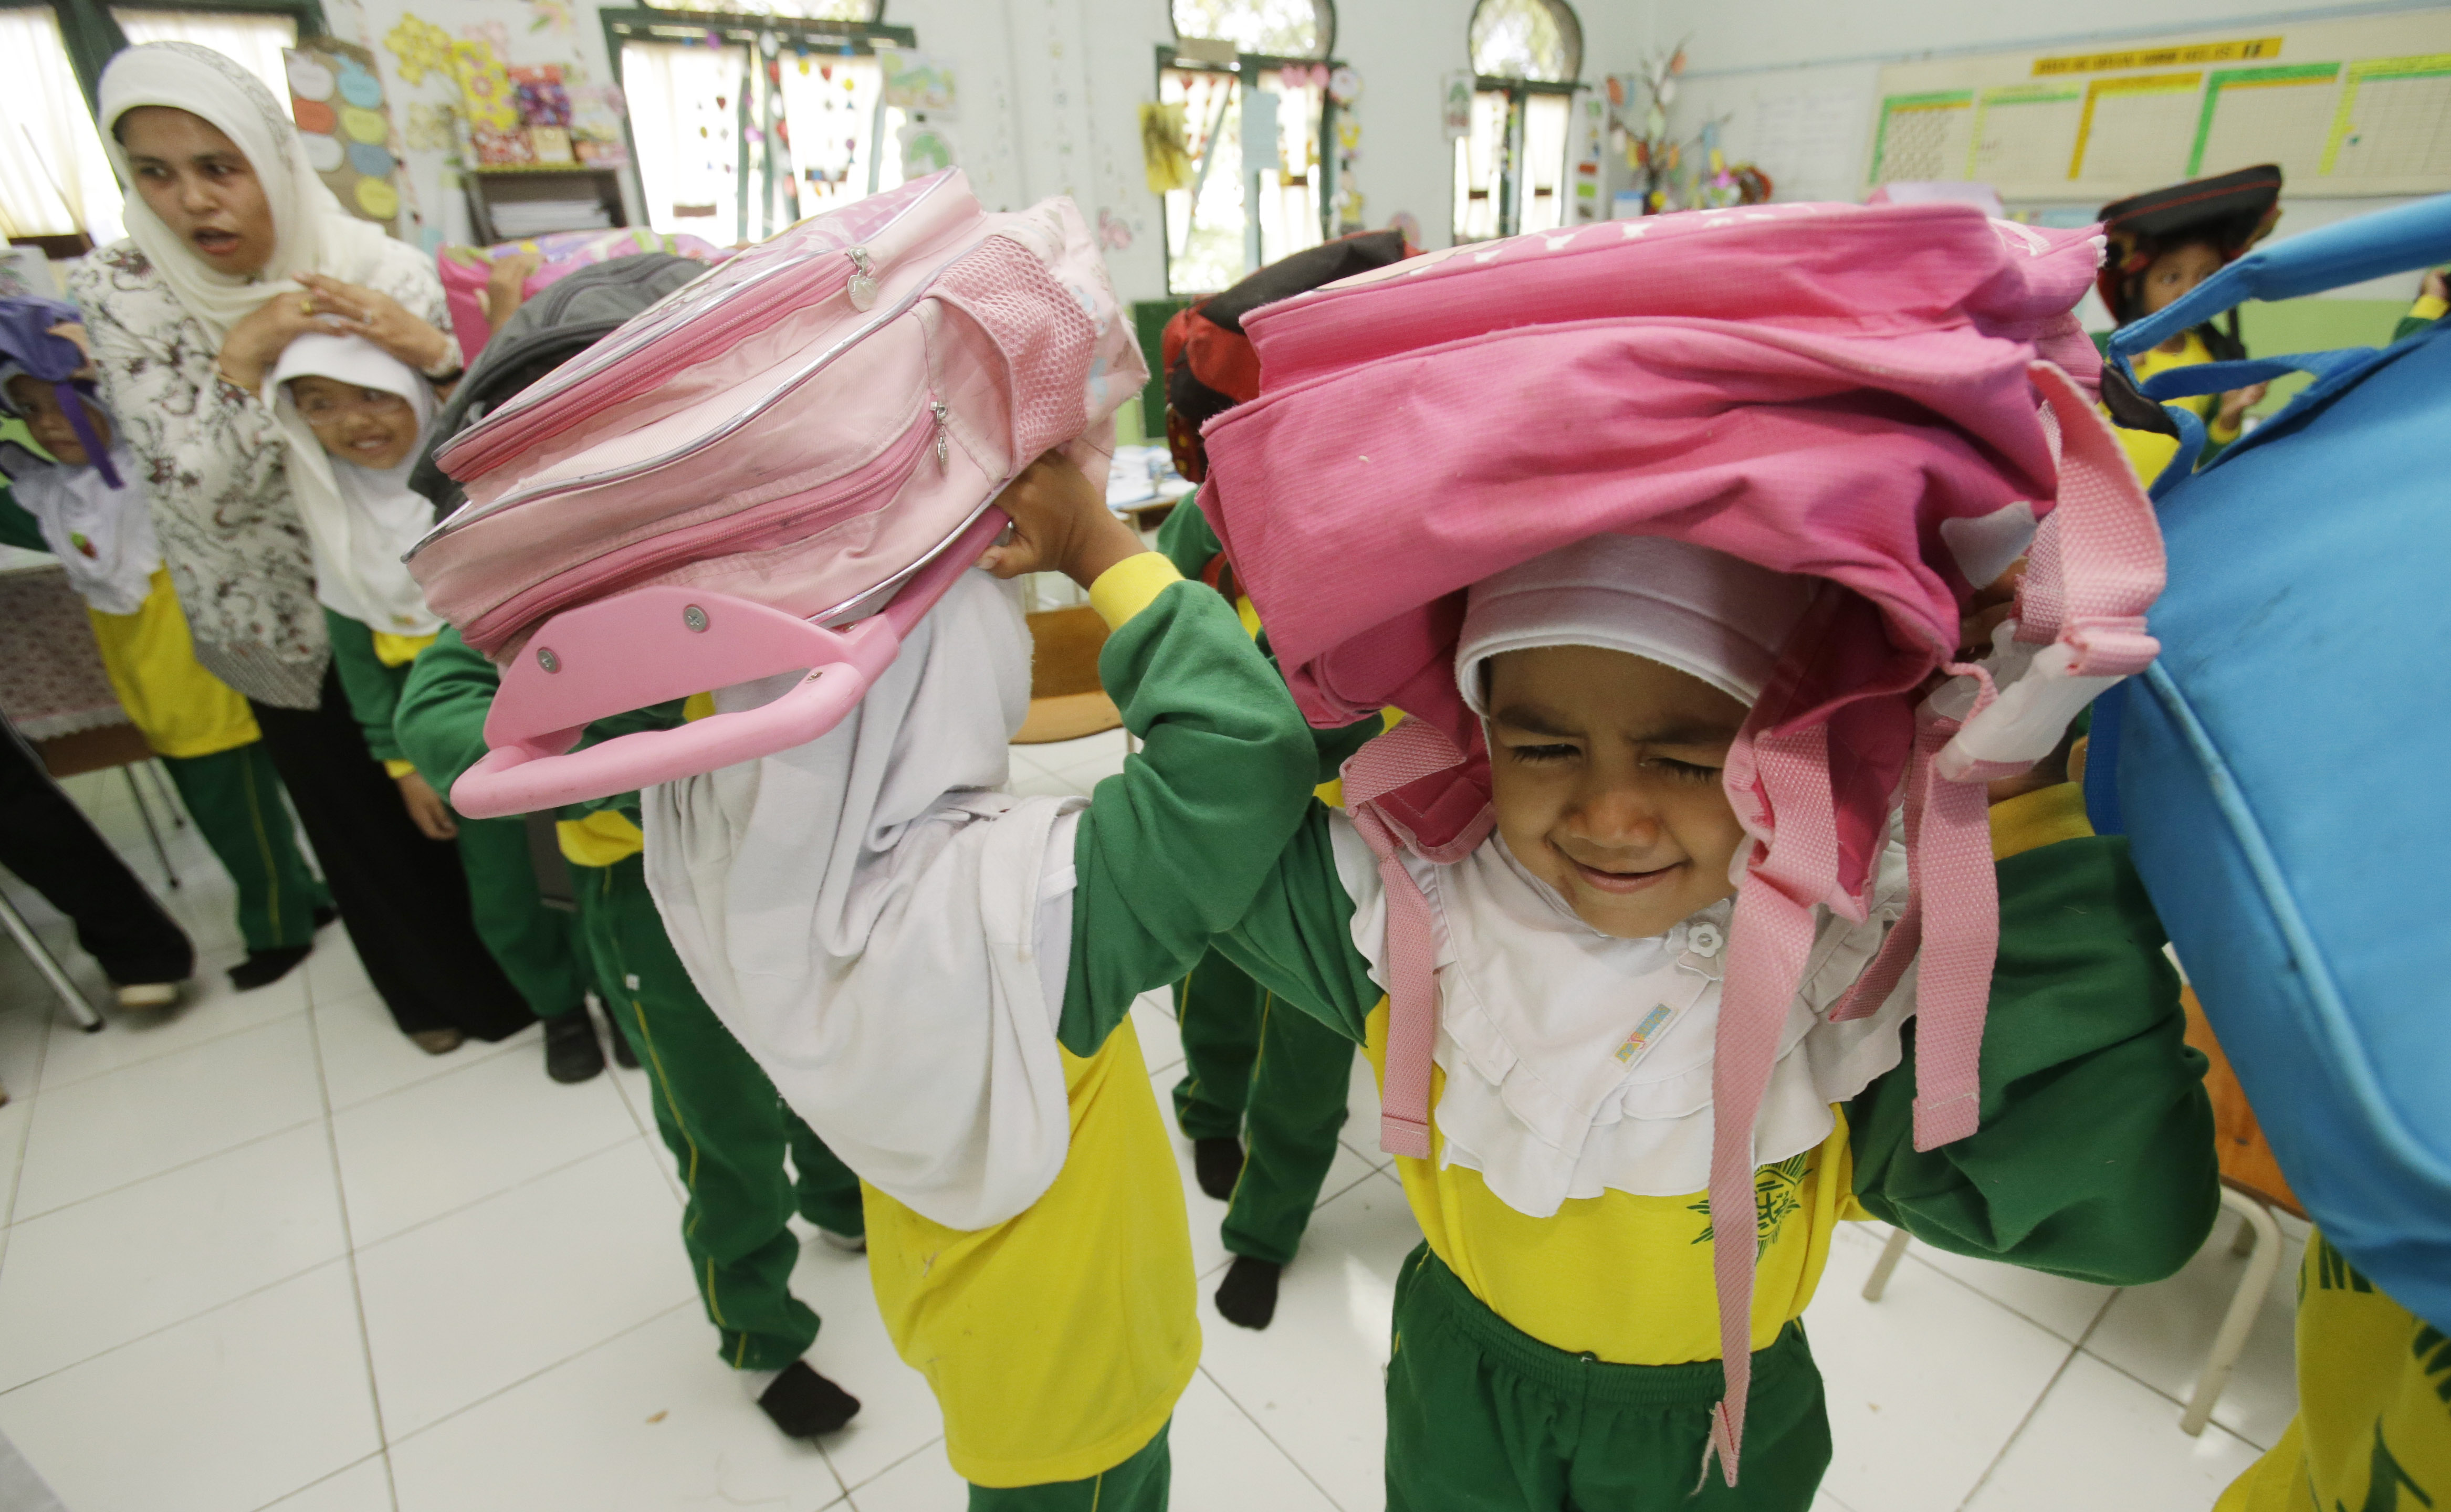 Students protect themselves head with a bag overhead during an earthquake drill at Muhammadiyah 1 Primary school in Banda Aceh. © UNICEF Indonesia/2014/Achmadi